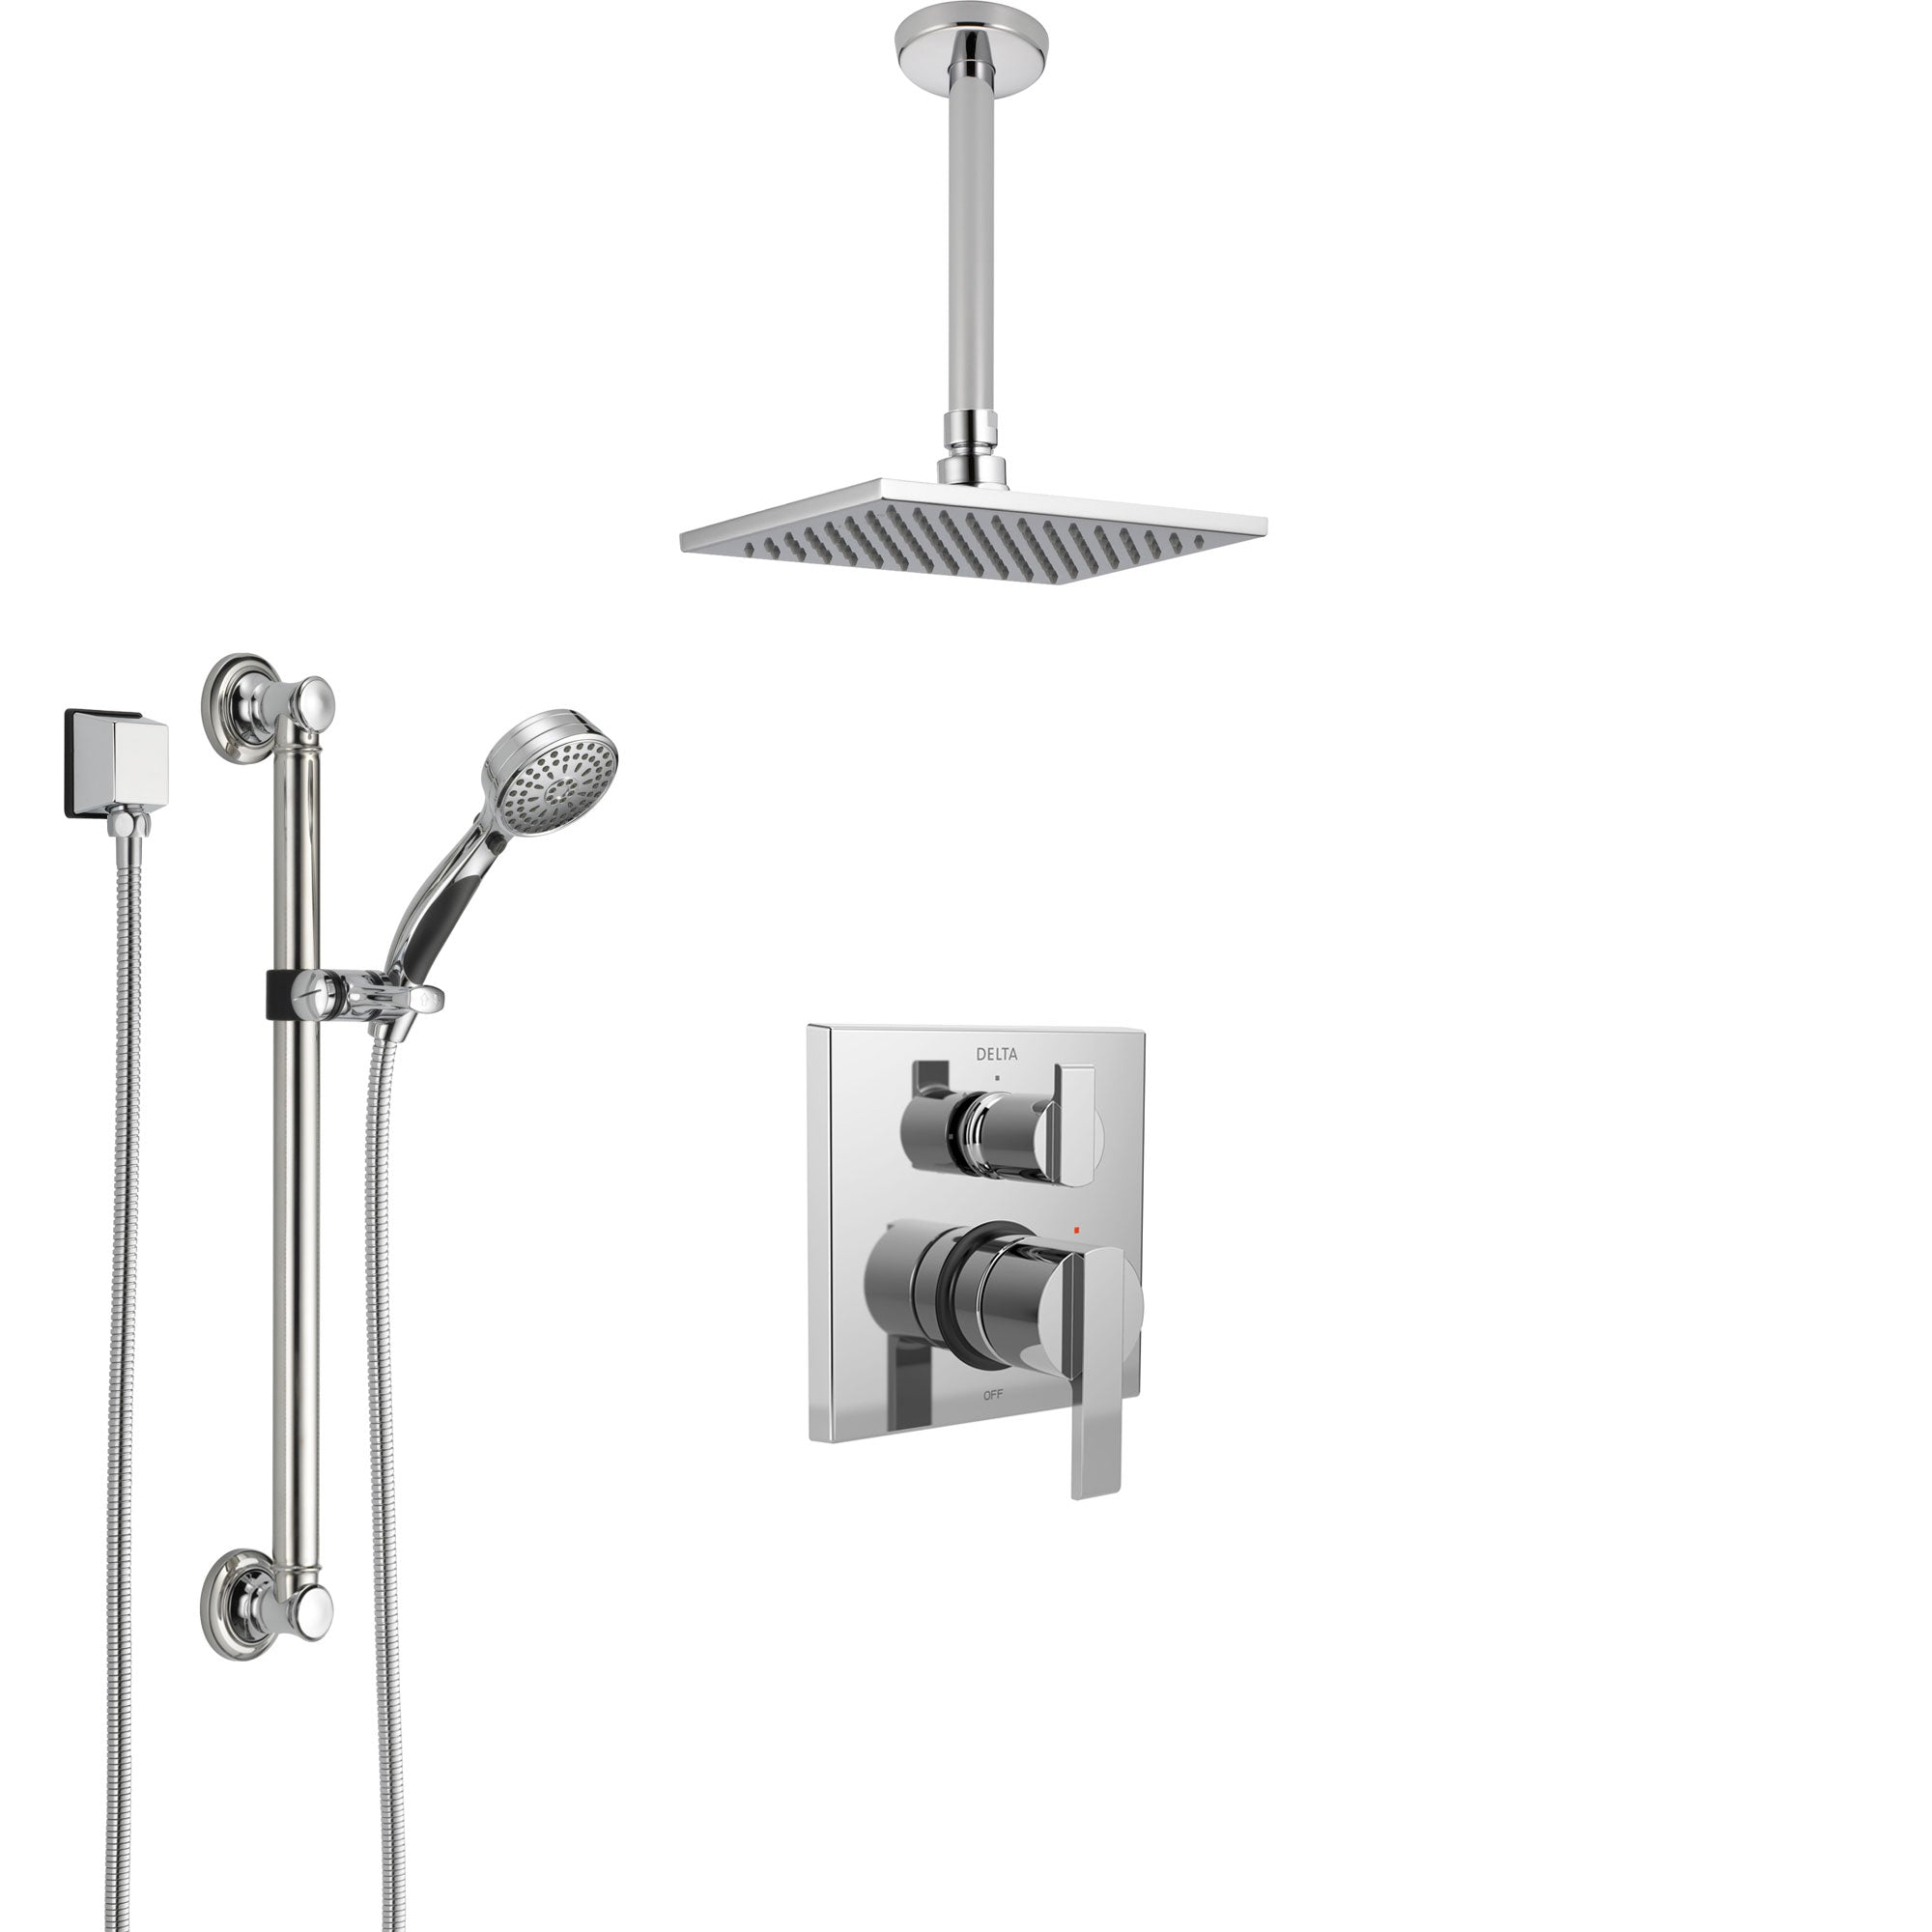 Delta Ara Chrome Finish Shower System with Control Handle, Integrated Diverter, Ceiling Mount Showerhead, and Hand Shower with Grab Bar SS248679